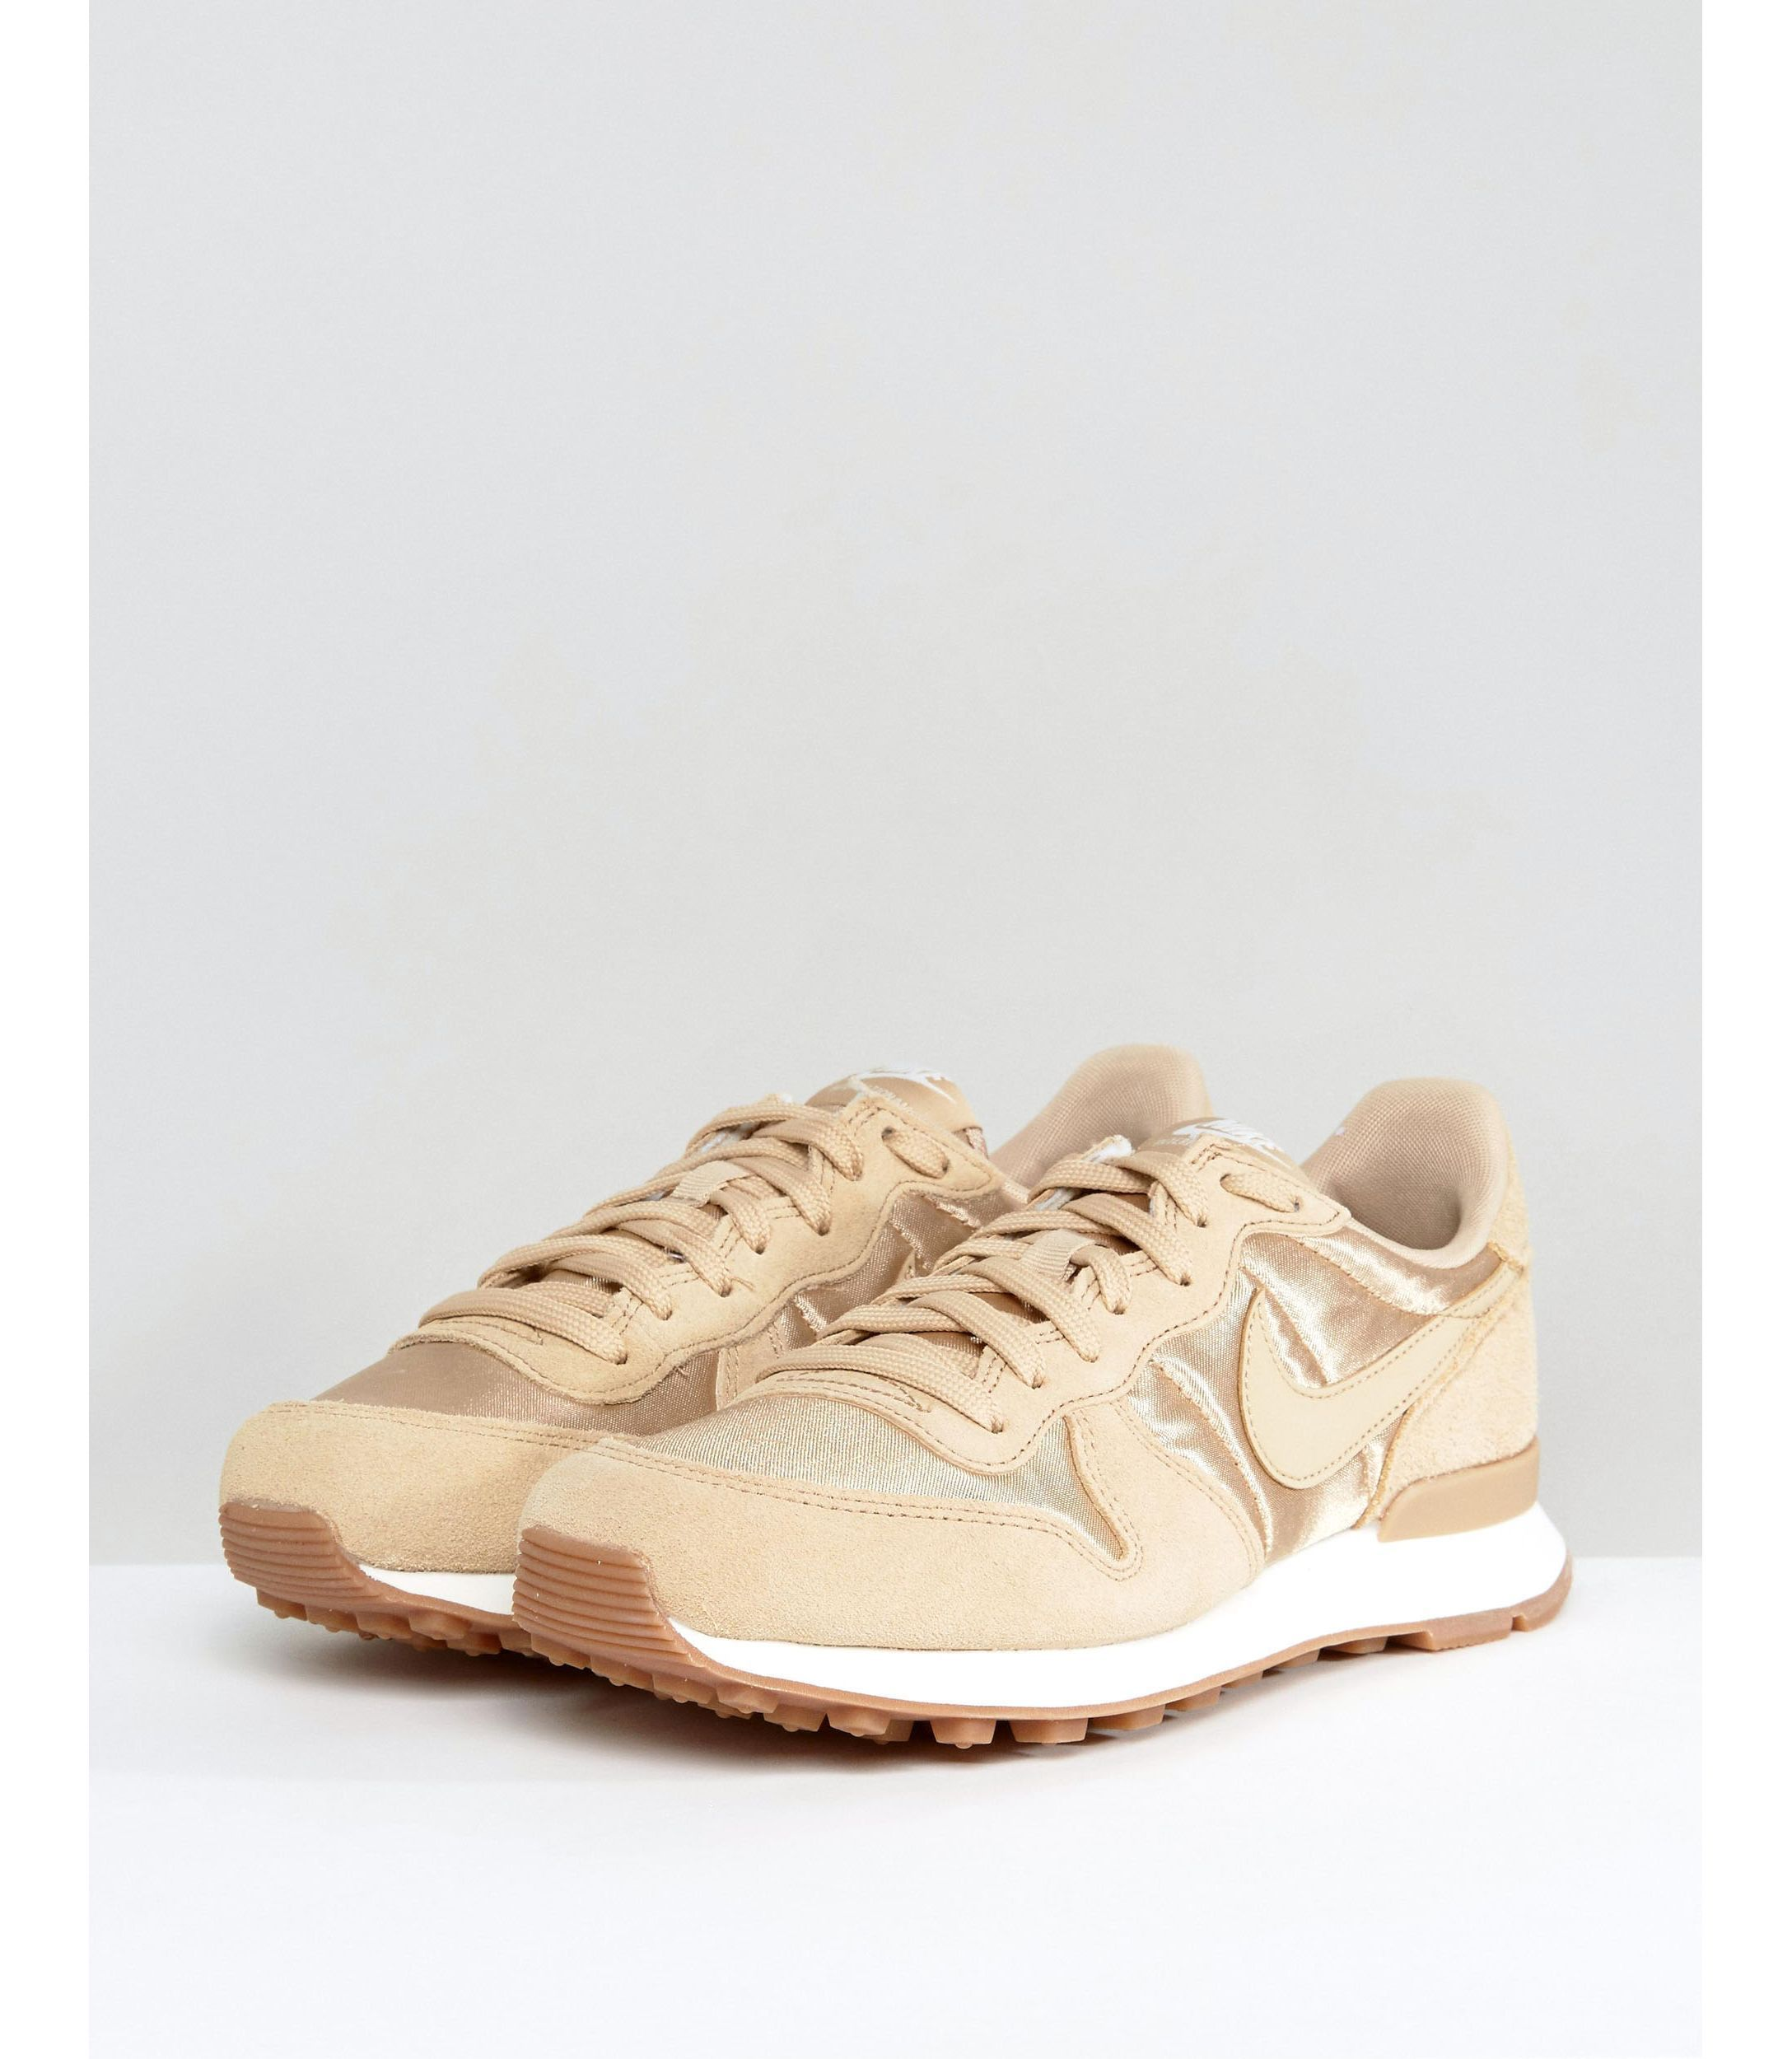 送料無料Nike Internationalist Essential スニーカー